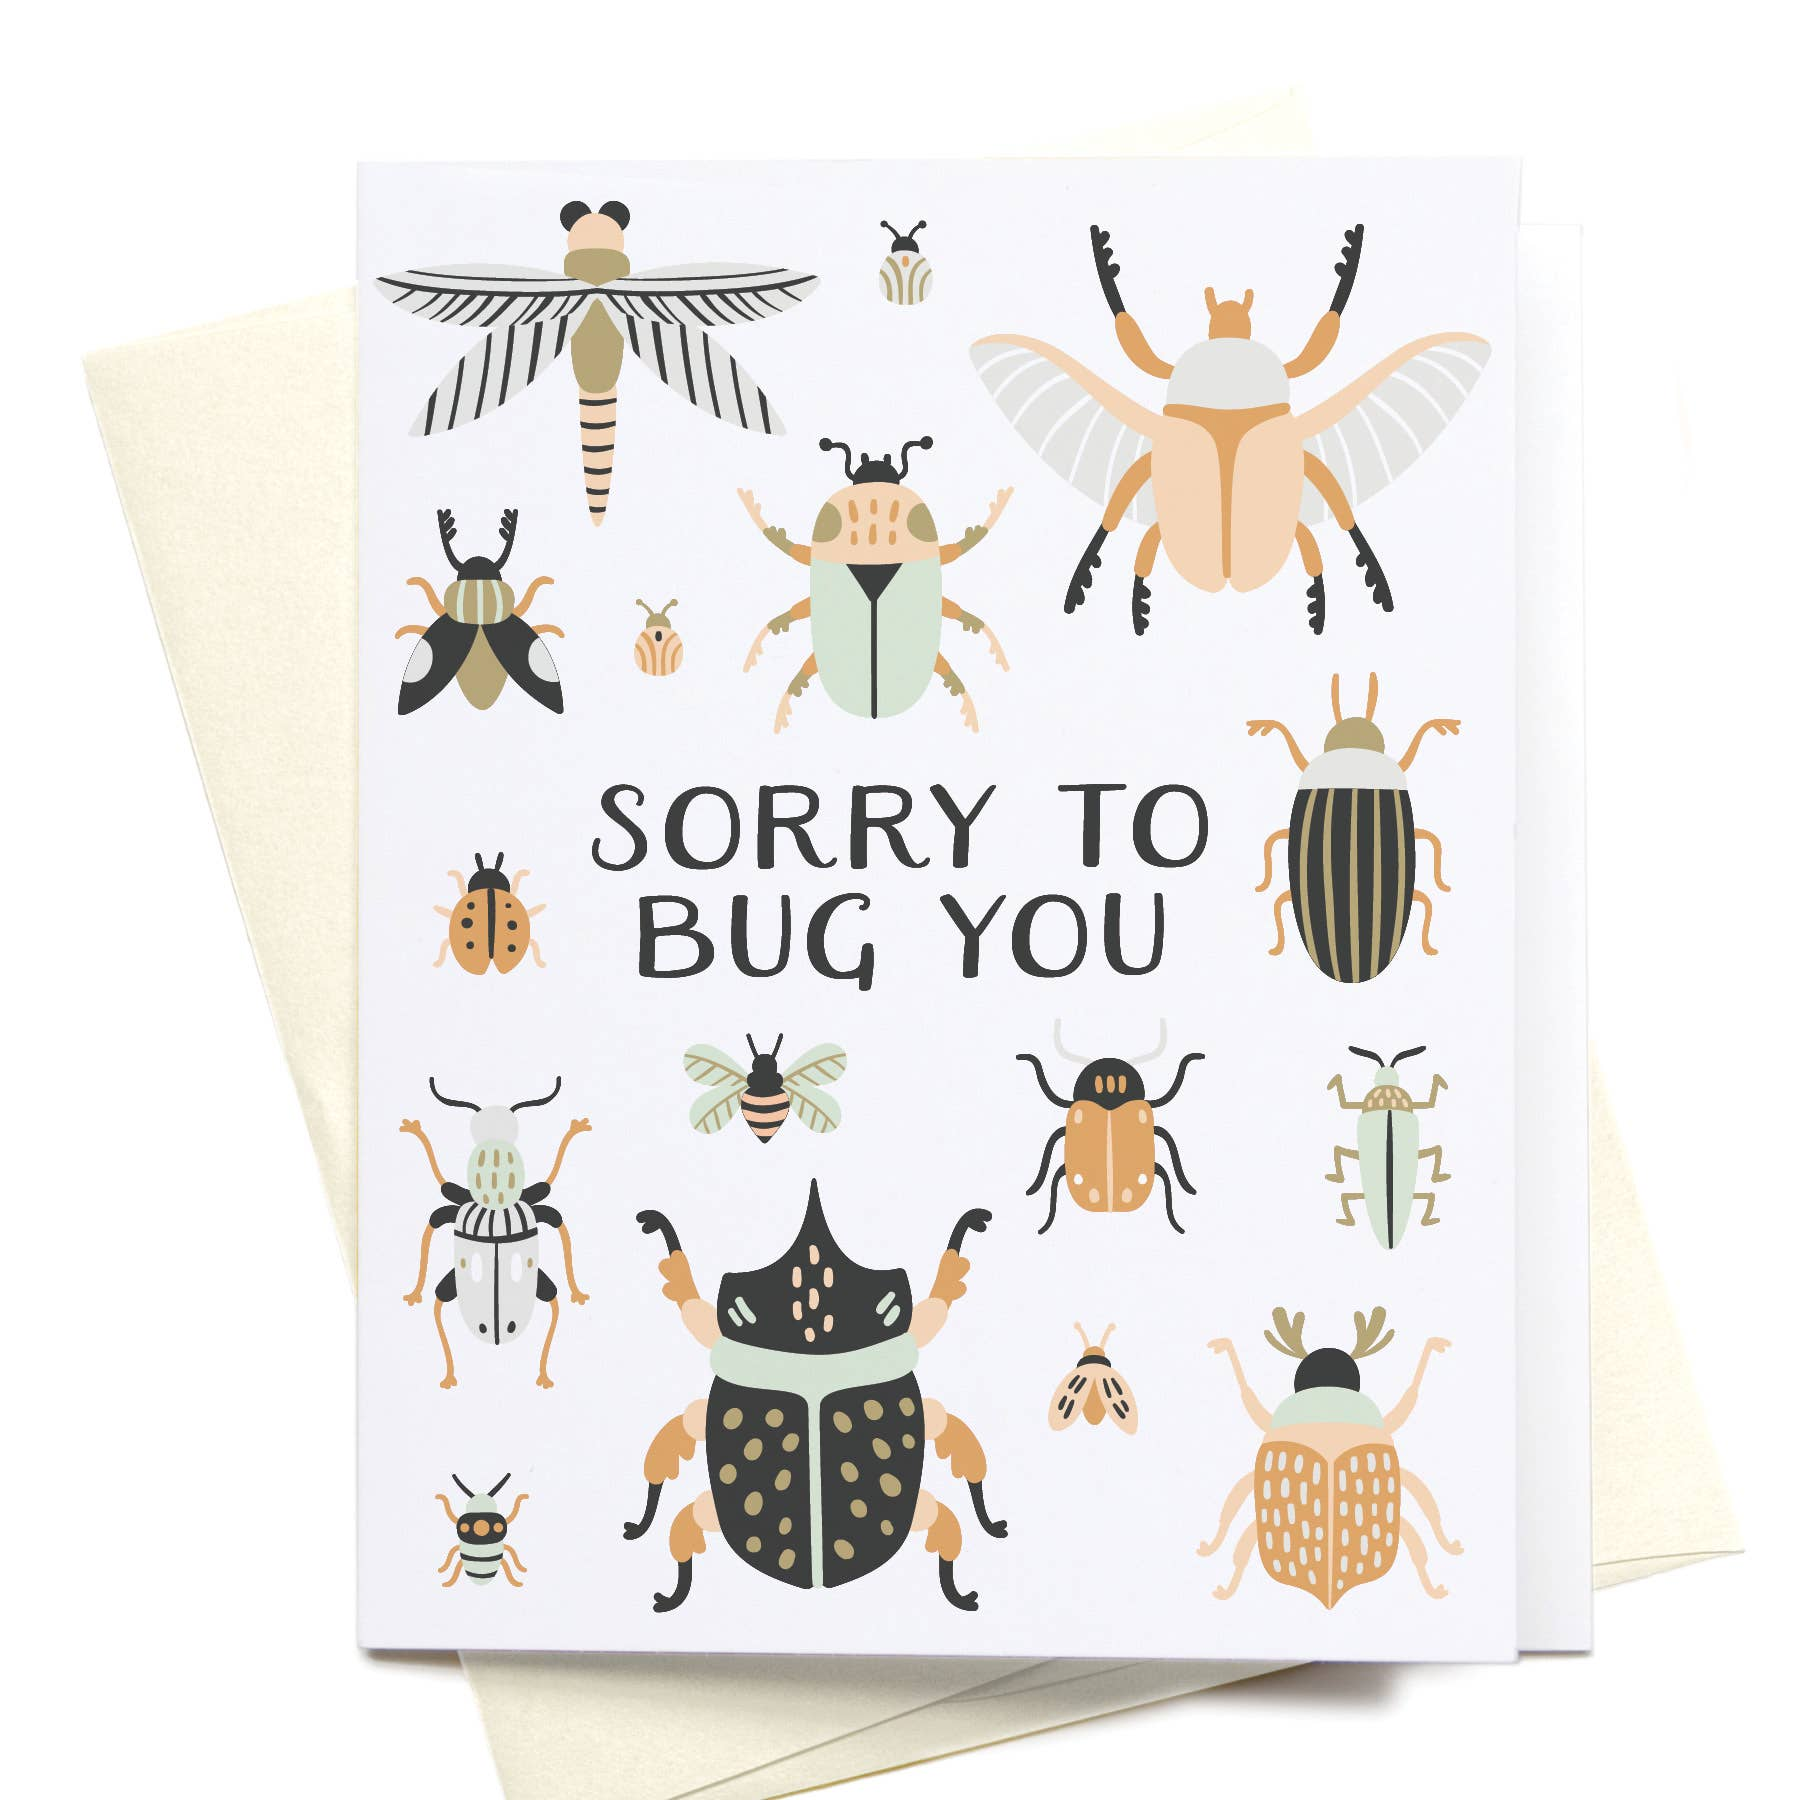 Sorry to Bug You Beetles + Bugs